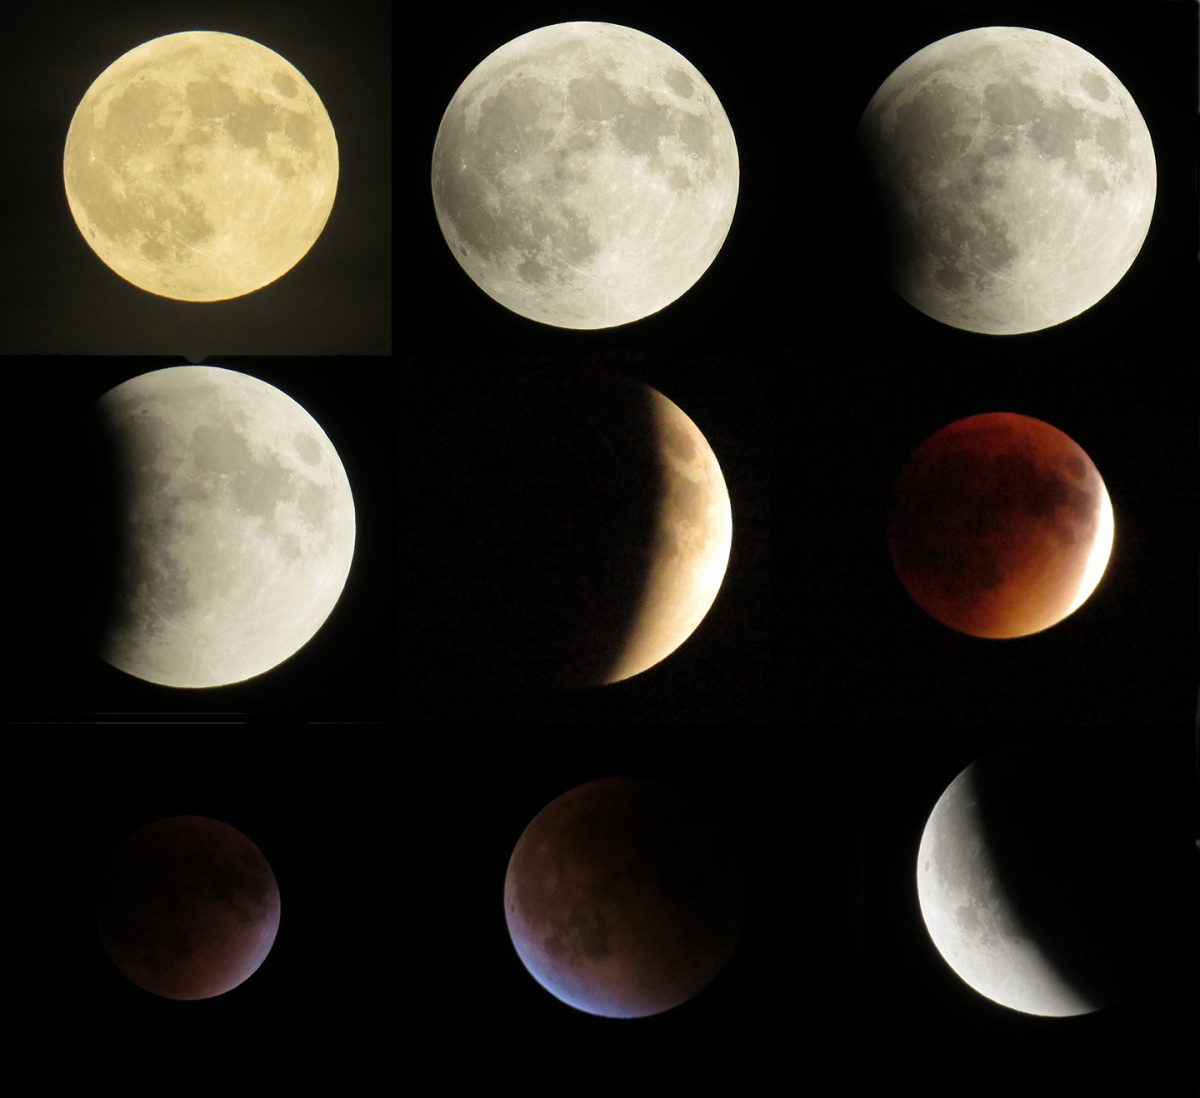 All phases of the super blood moon eclipse